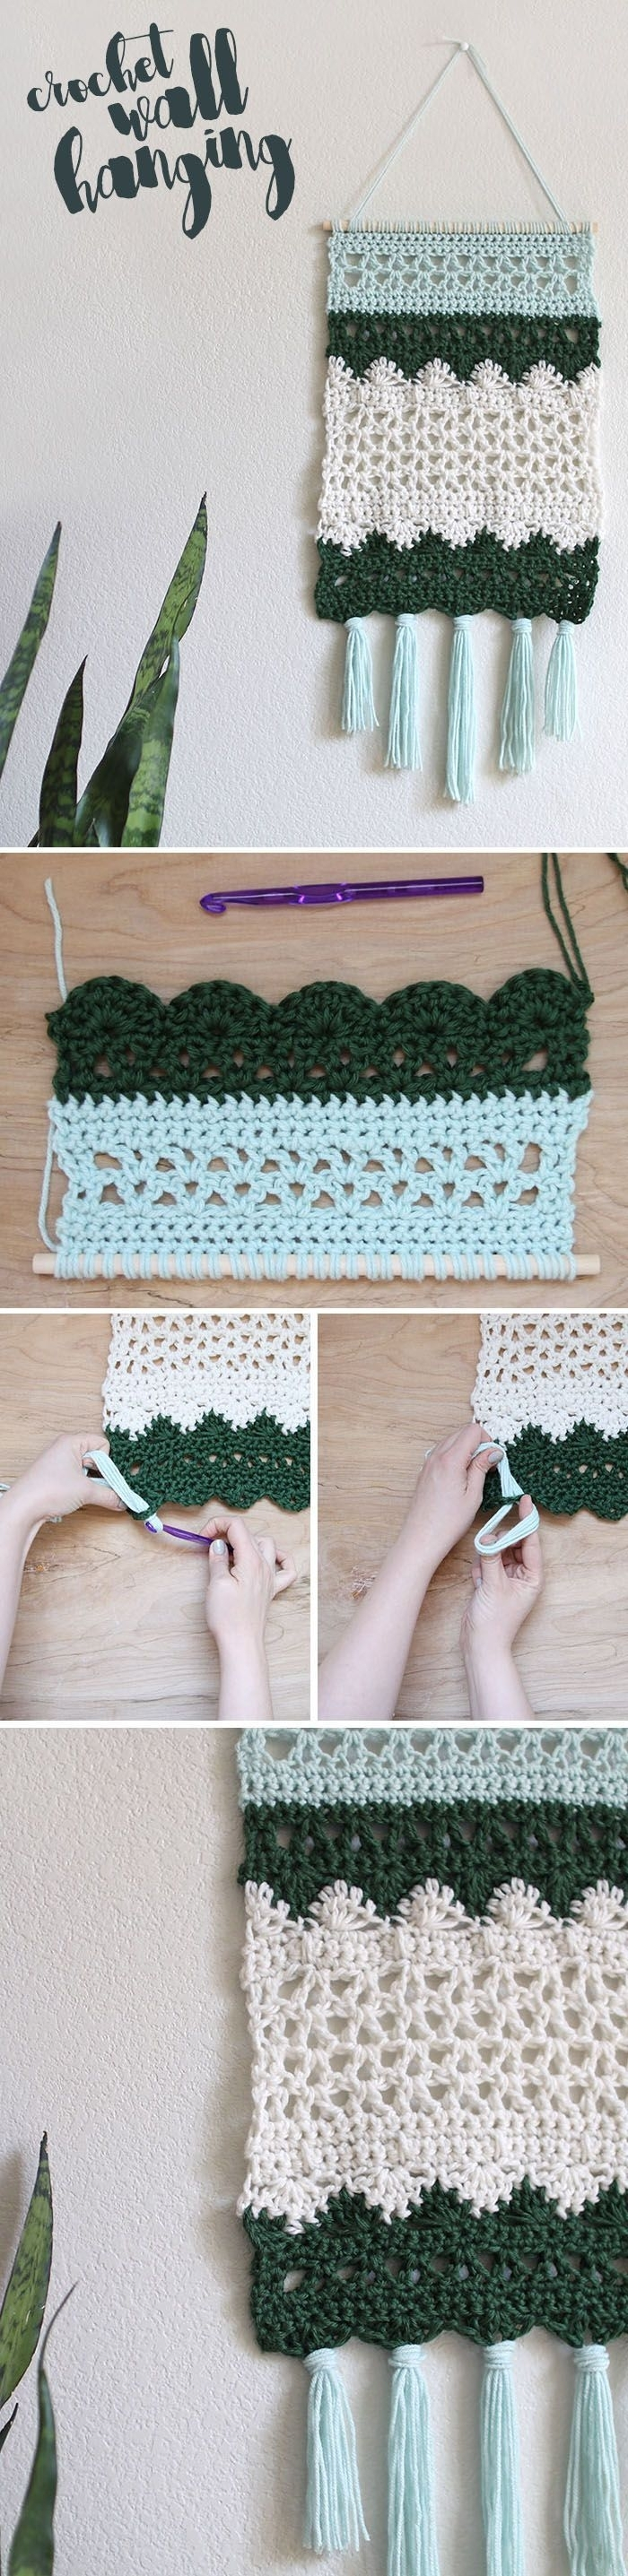 Crochet Wall Hanging Pattern | Moogly Community Board | Pinterest pertaining to Crochet Wall Art (Image 6 of 20)